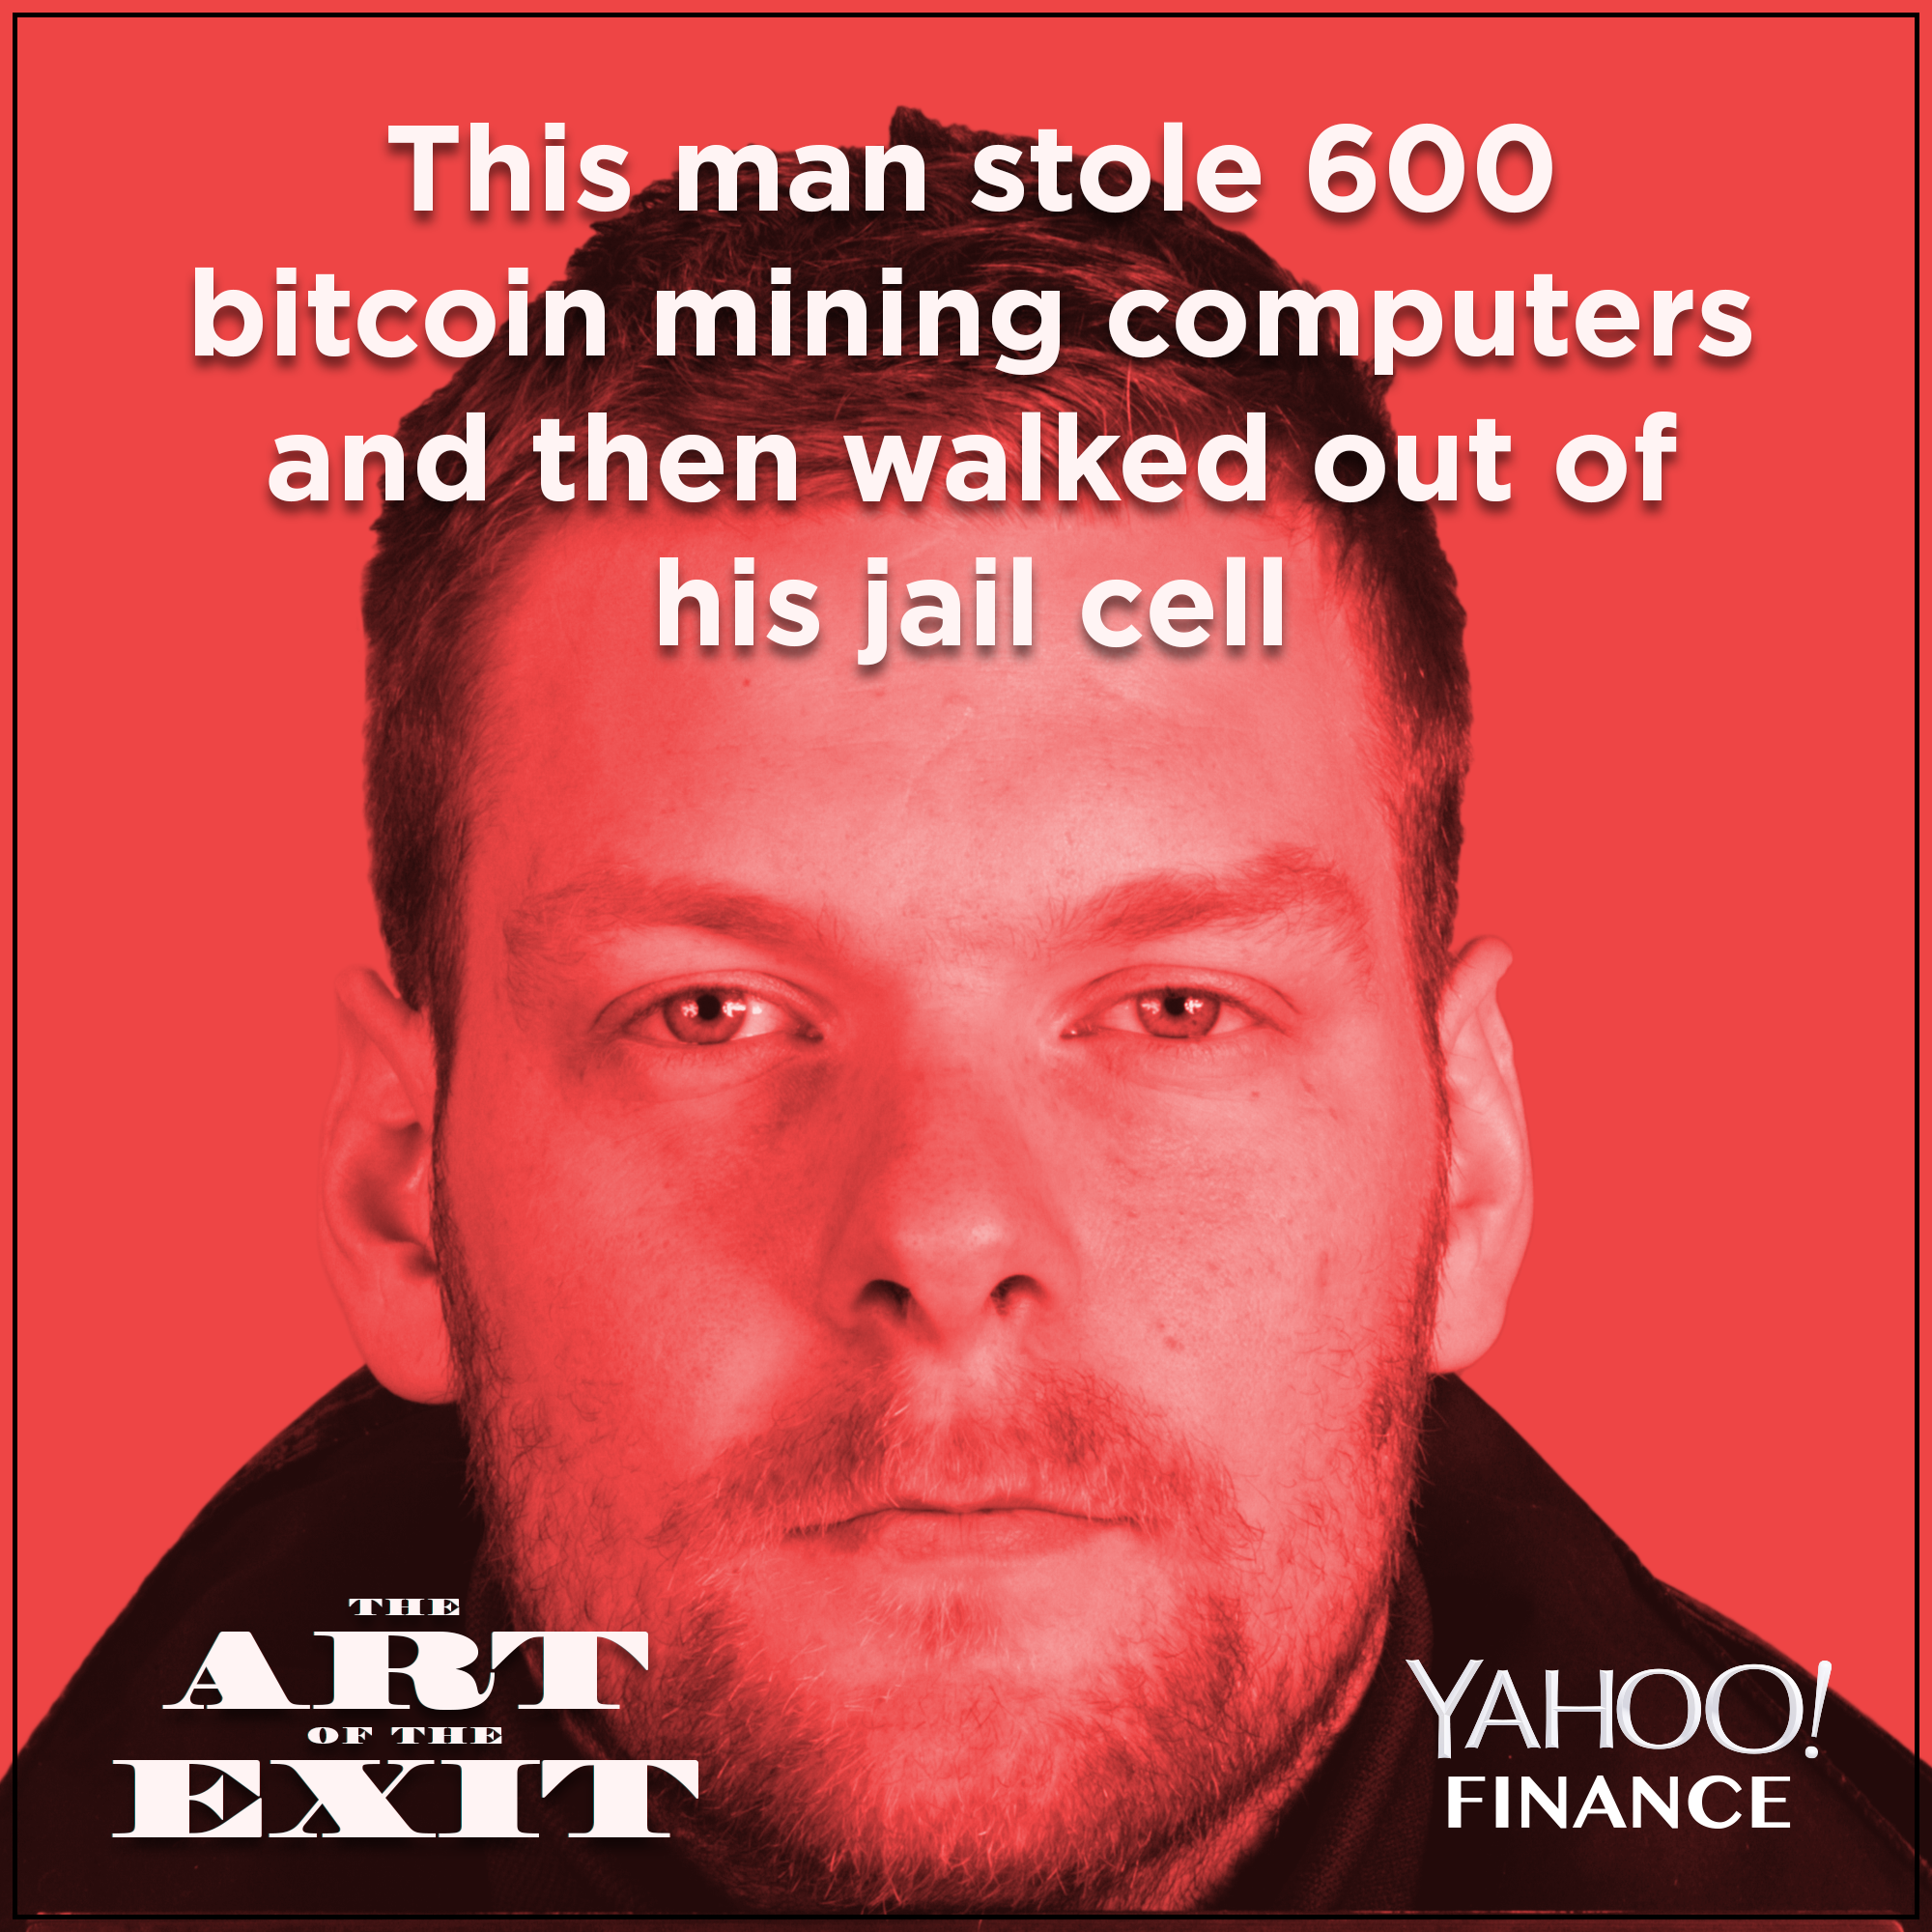 This man stole 600 bitcoin mining computers and then walked out of his jail cell